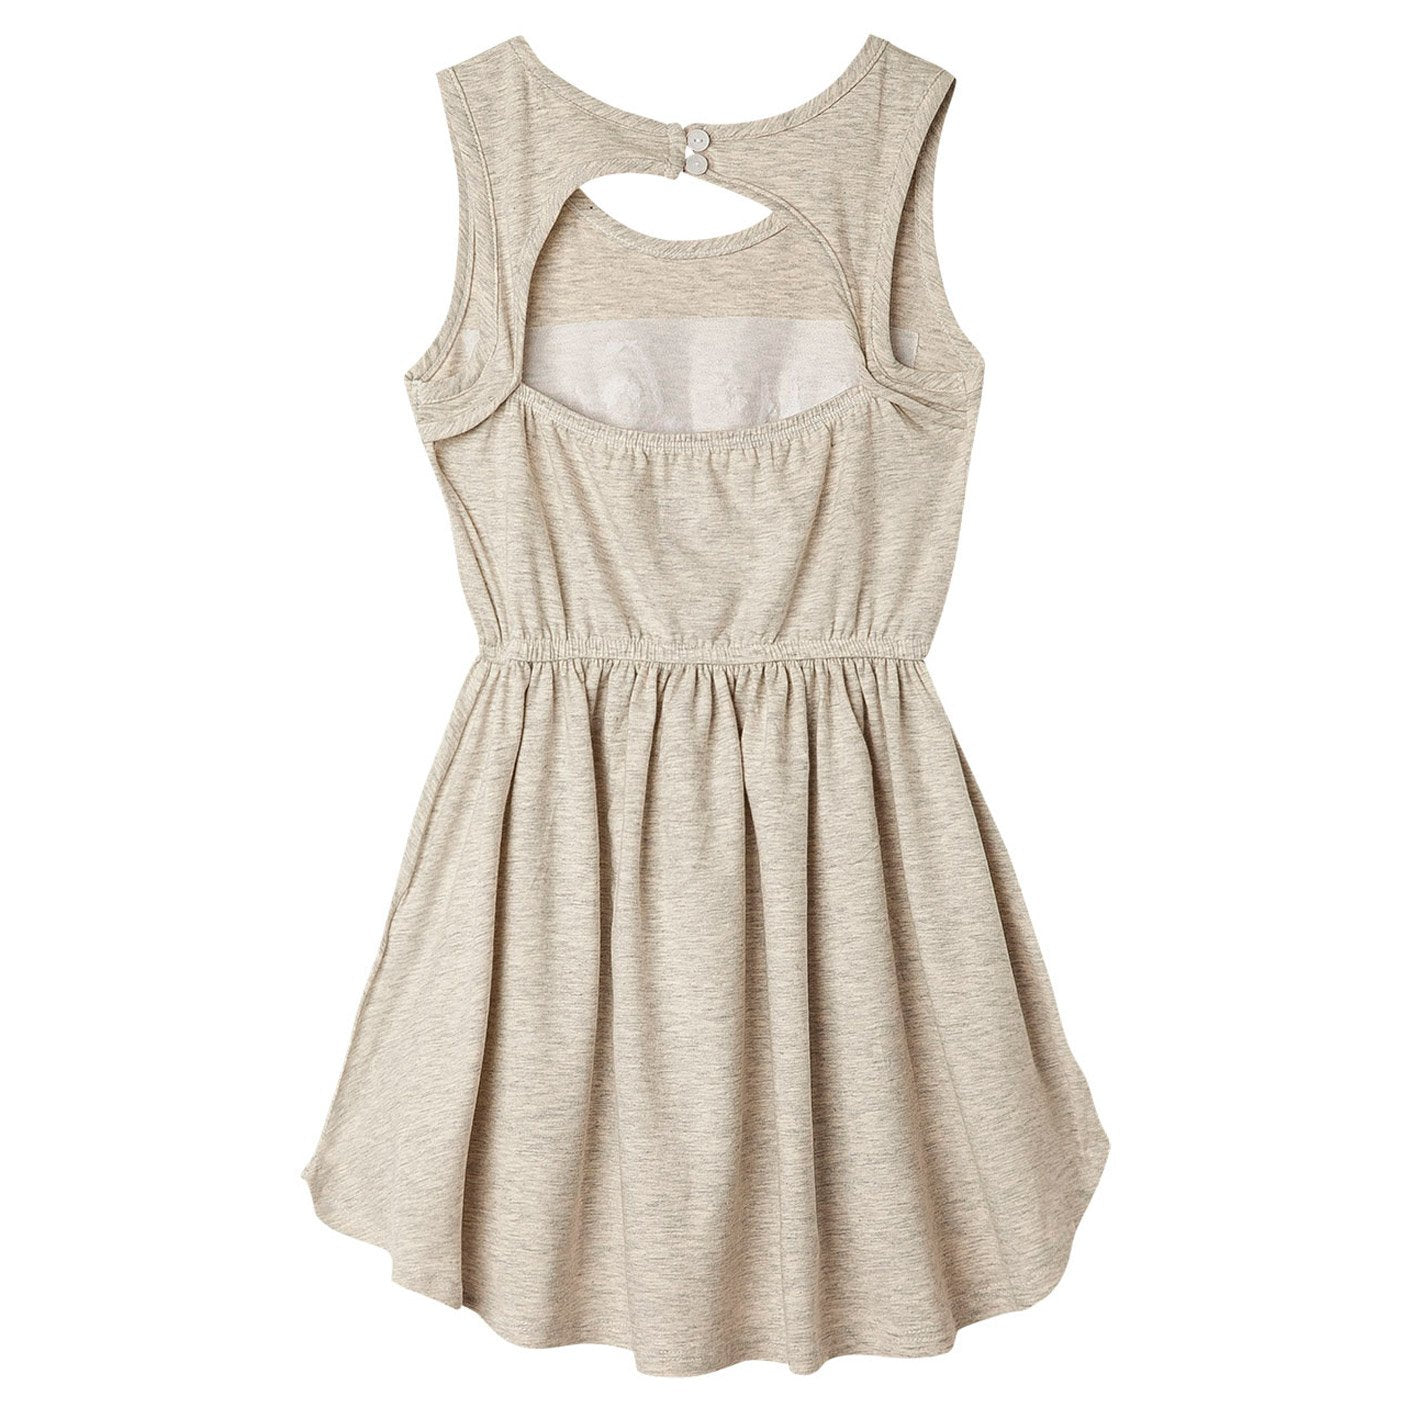 Sleeveless Spring Cool Summer Dresses